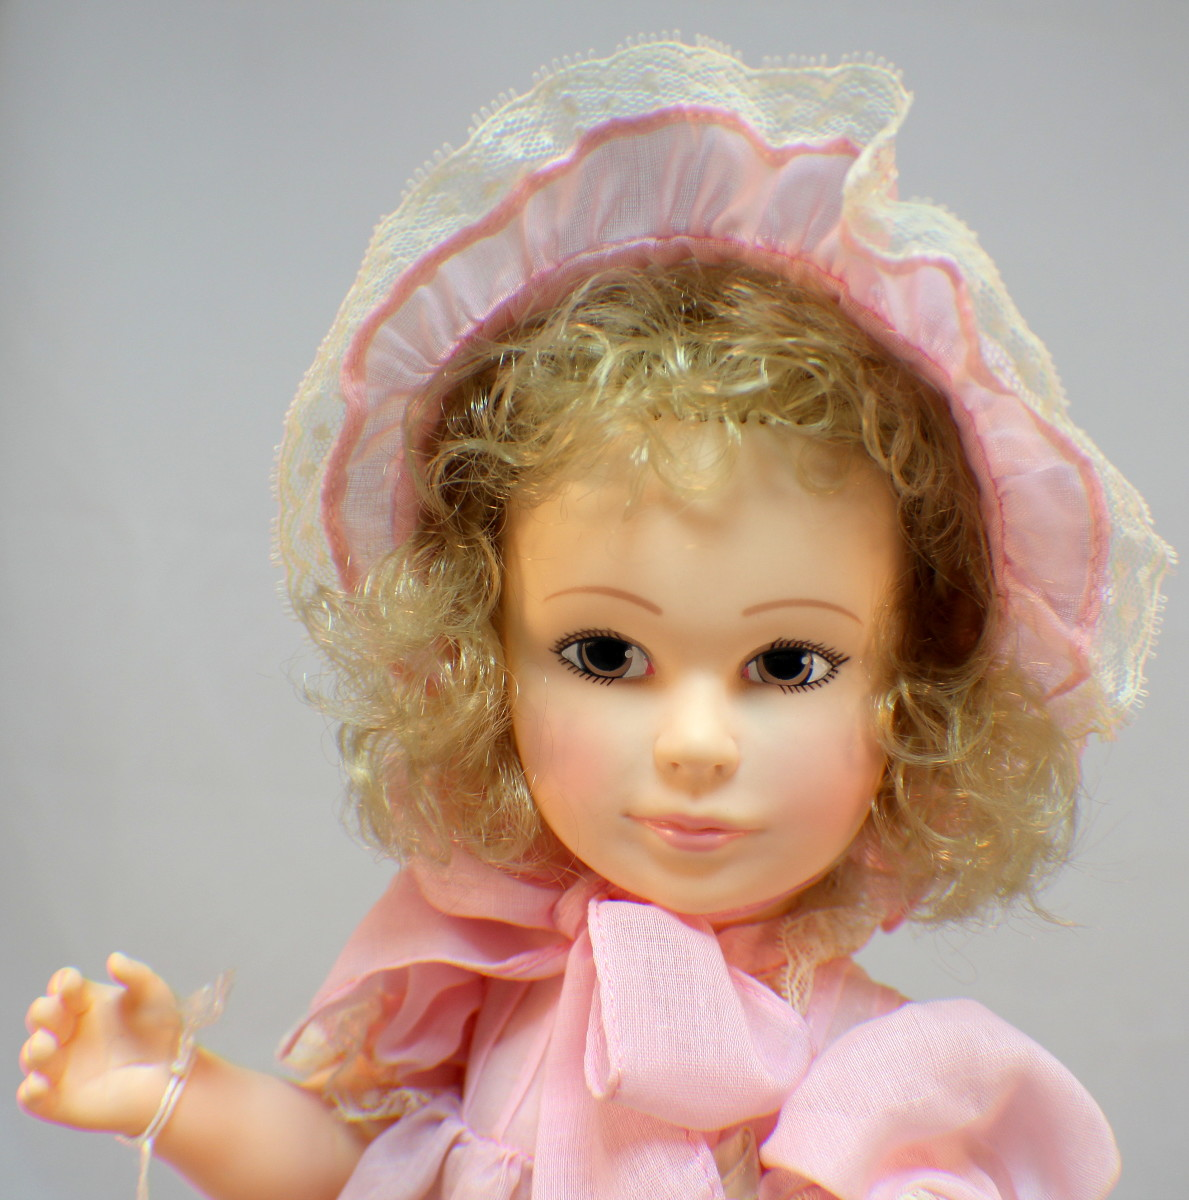 Jan Hagara Figurines For Sale: Vintage Jan Hagara Minty Crisp Laurel Doll All Original